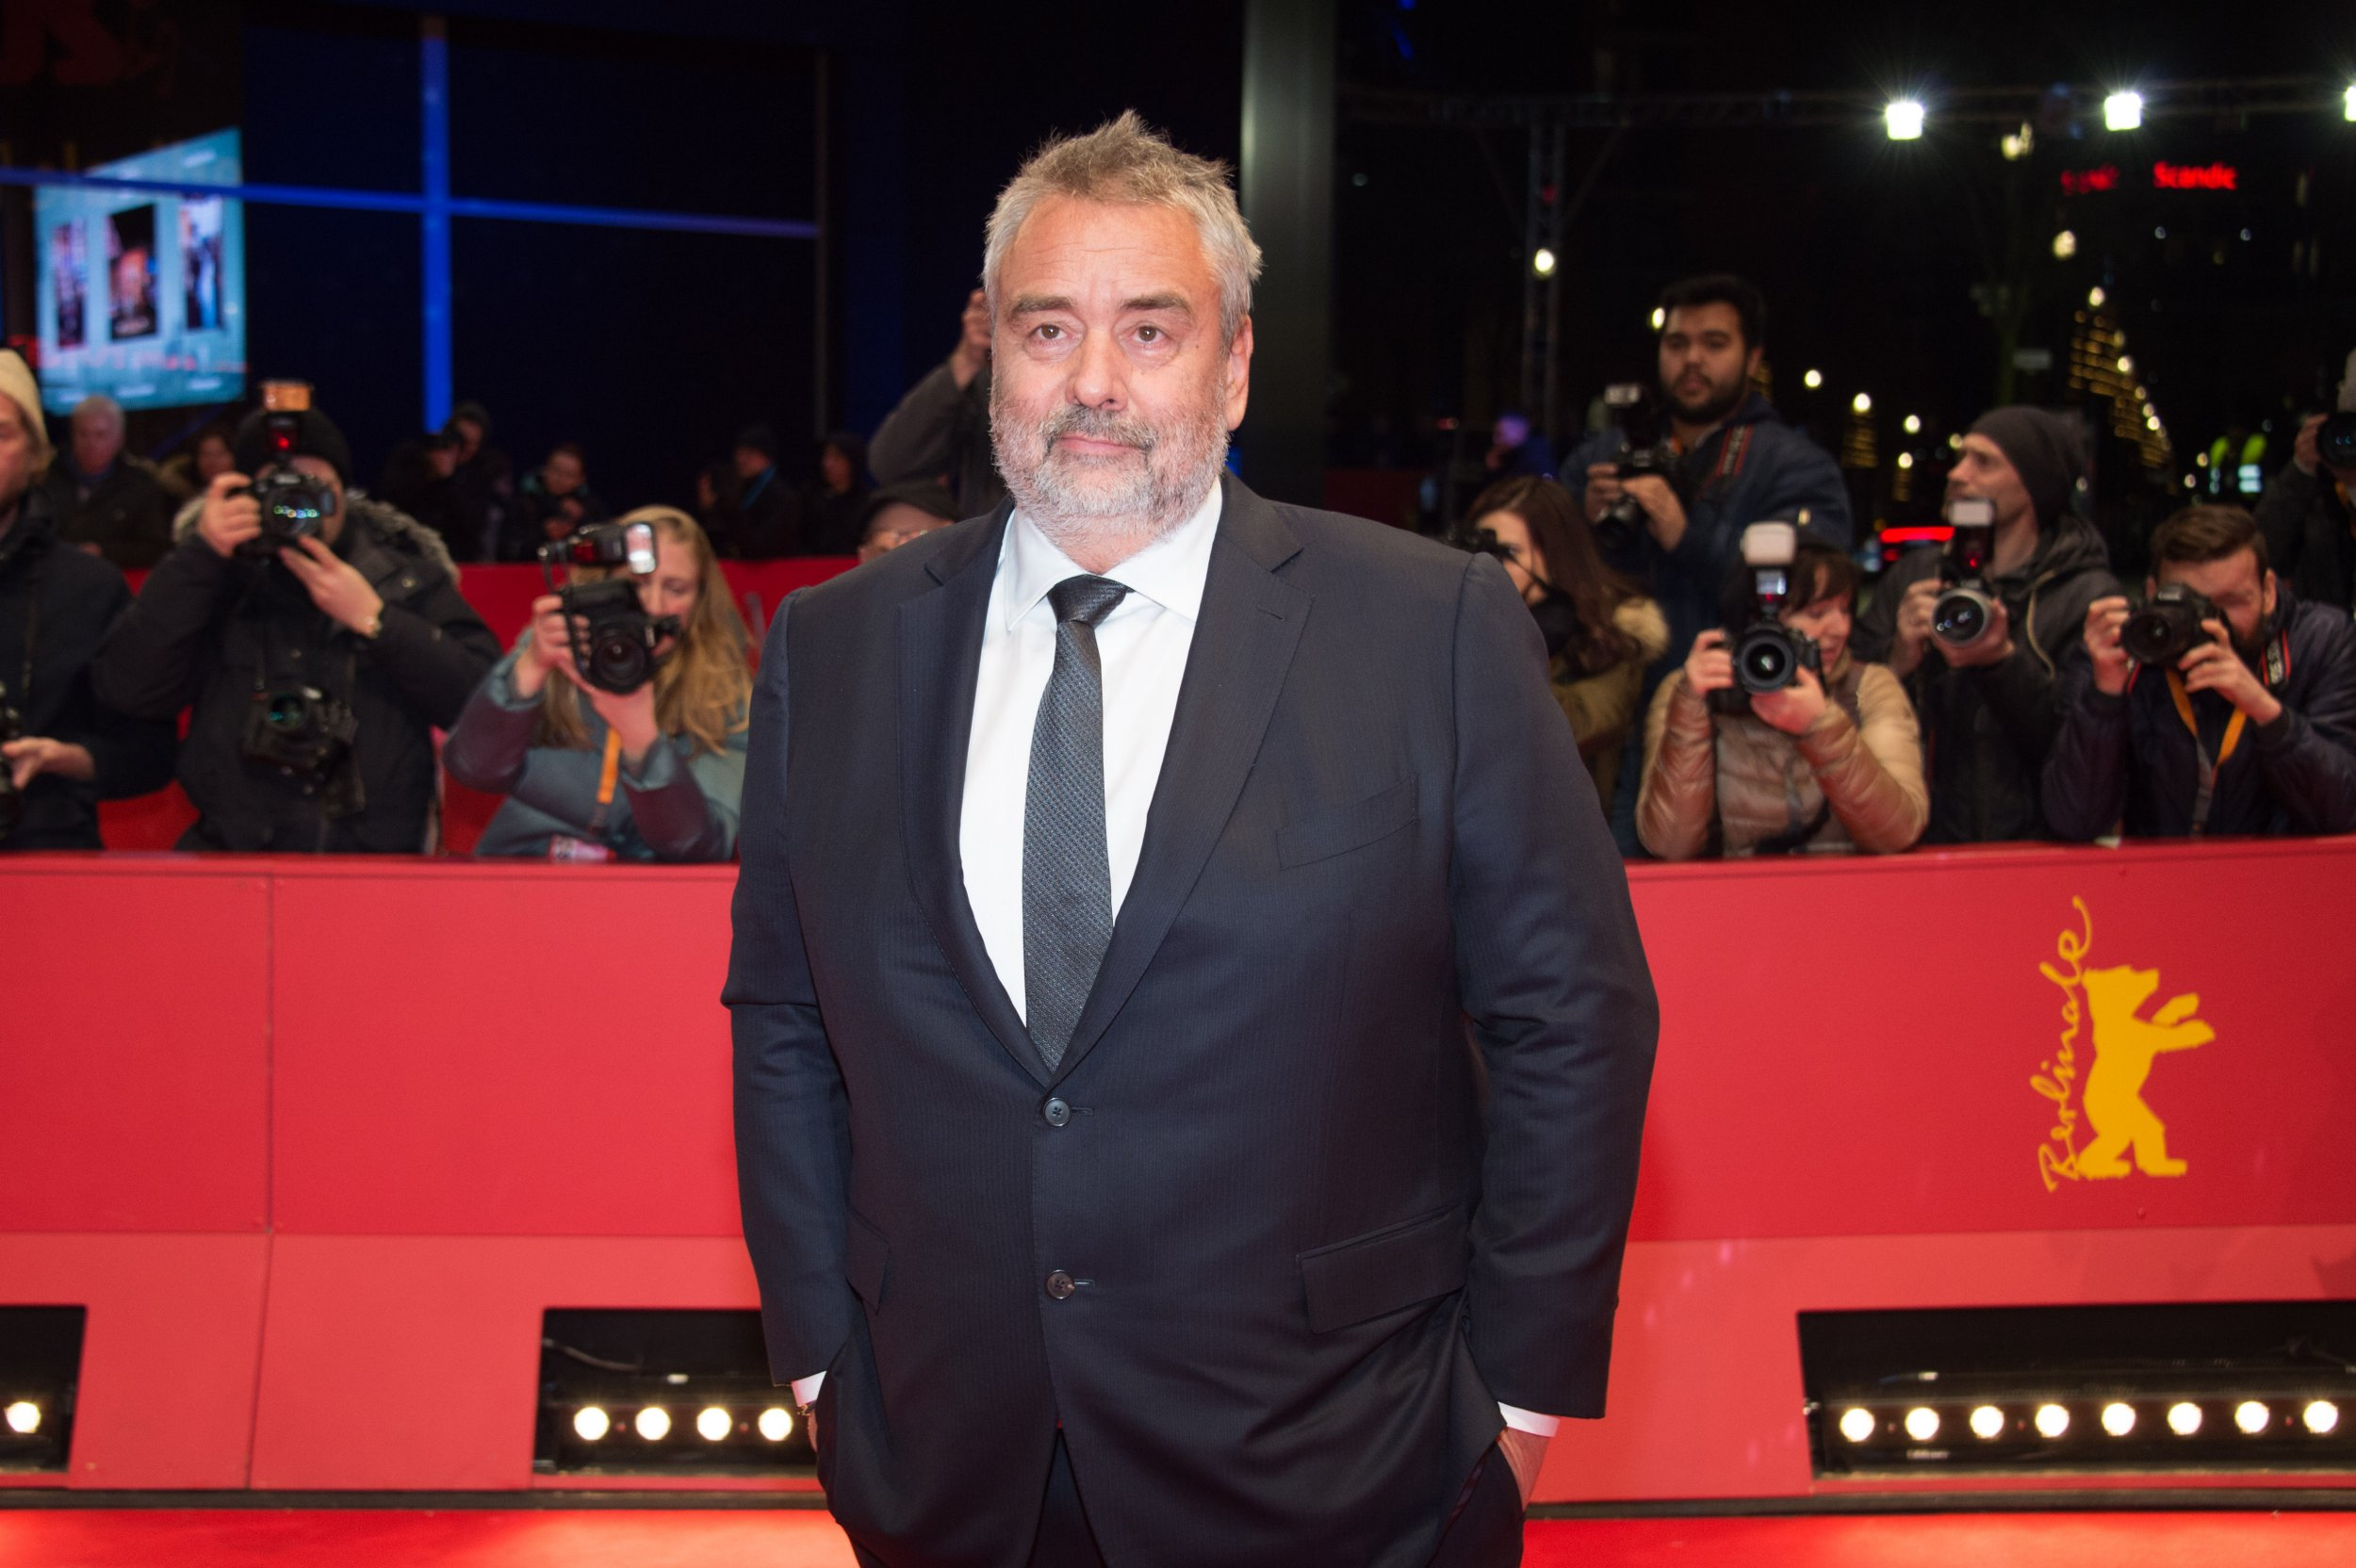 BERLIN, GERMANY - FEBRUARY 17: Luc Besson attends the 'Eva' premiere during the 68th Berlinale International Film Festival Berlin at Berlinale Palast on February 17, 2018 in Berlin, Germany. (Photo by Stephane Cardinale - Corbis/Corbis via Getty Images)